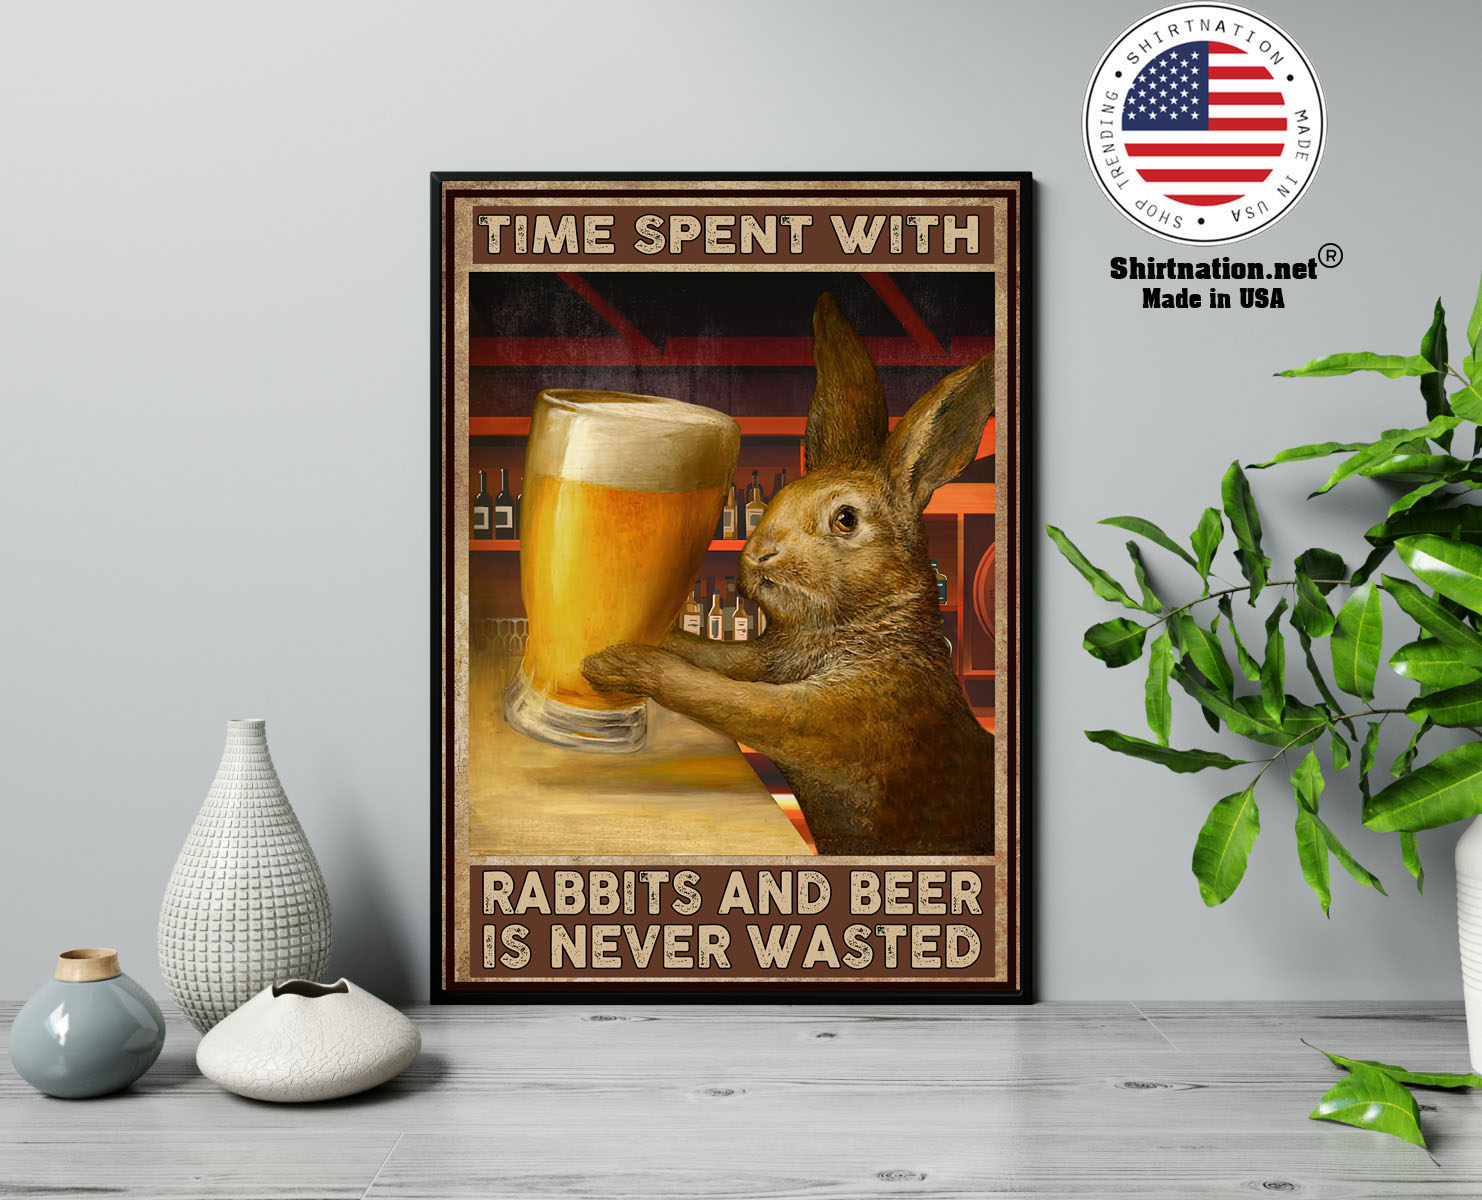 Time spent with rabbits and beer is never wasted poster 13